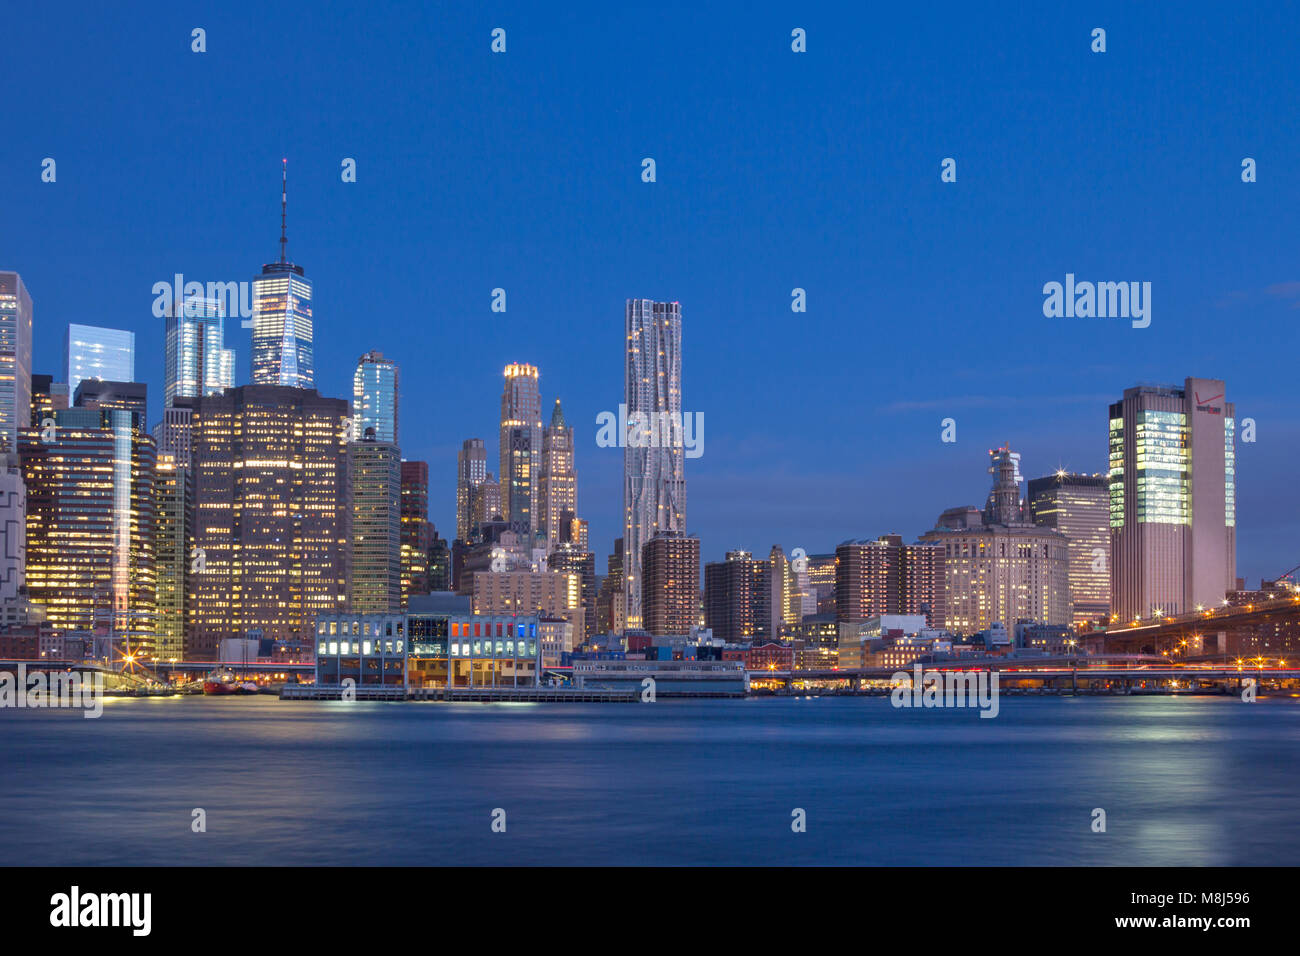 DOWNTOWN SKYLINE EAST RIVER MANHATTAN NEW YORK CITY USA - Stock Image